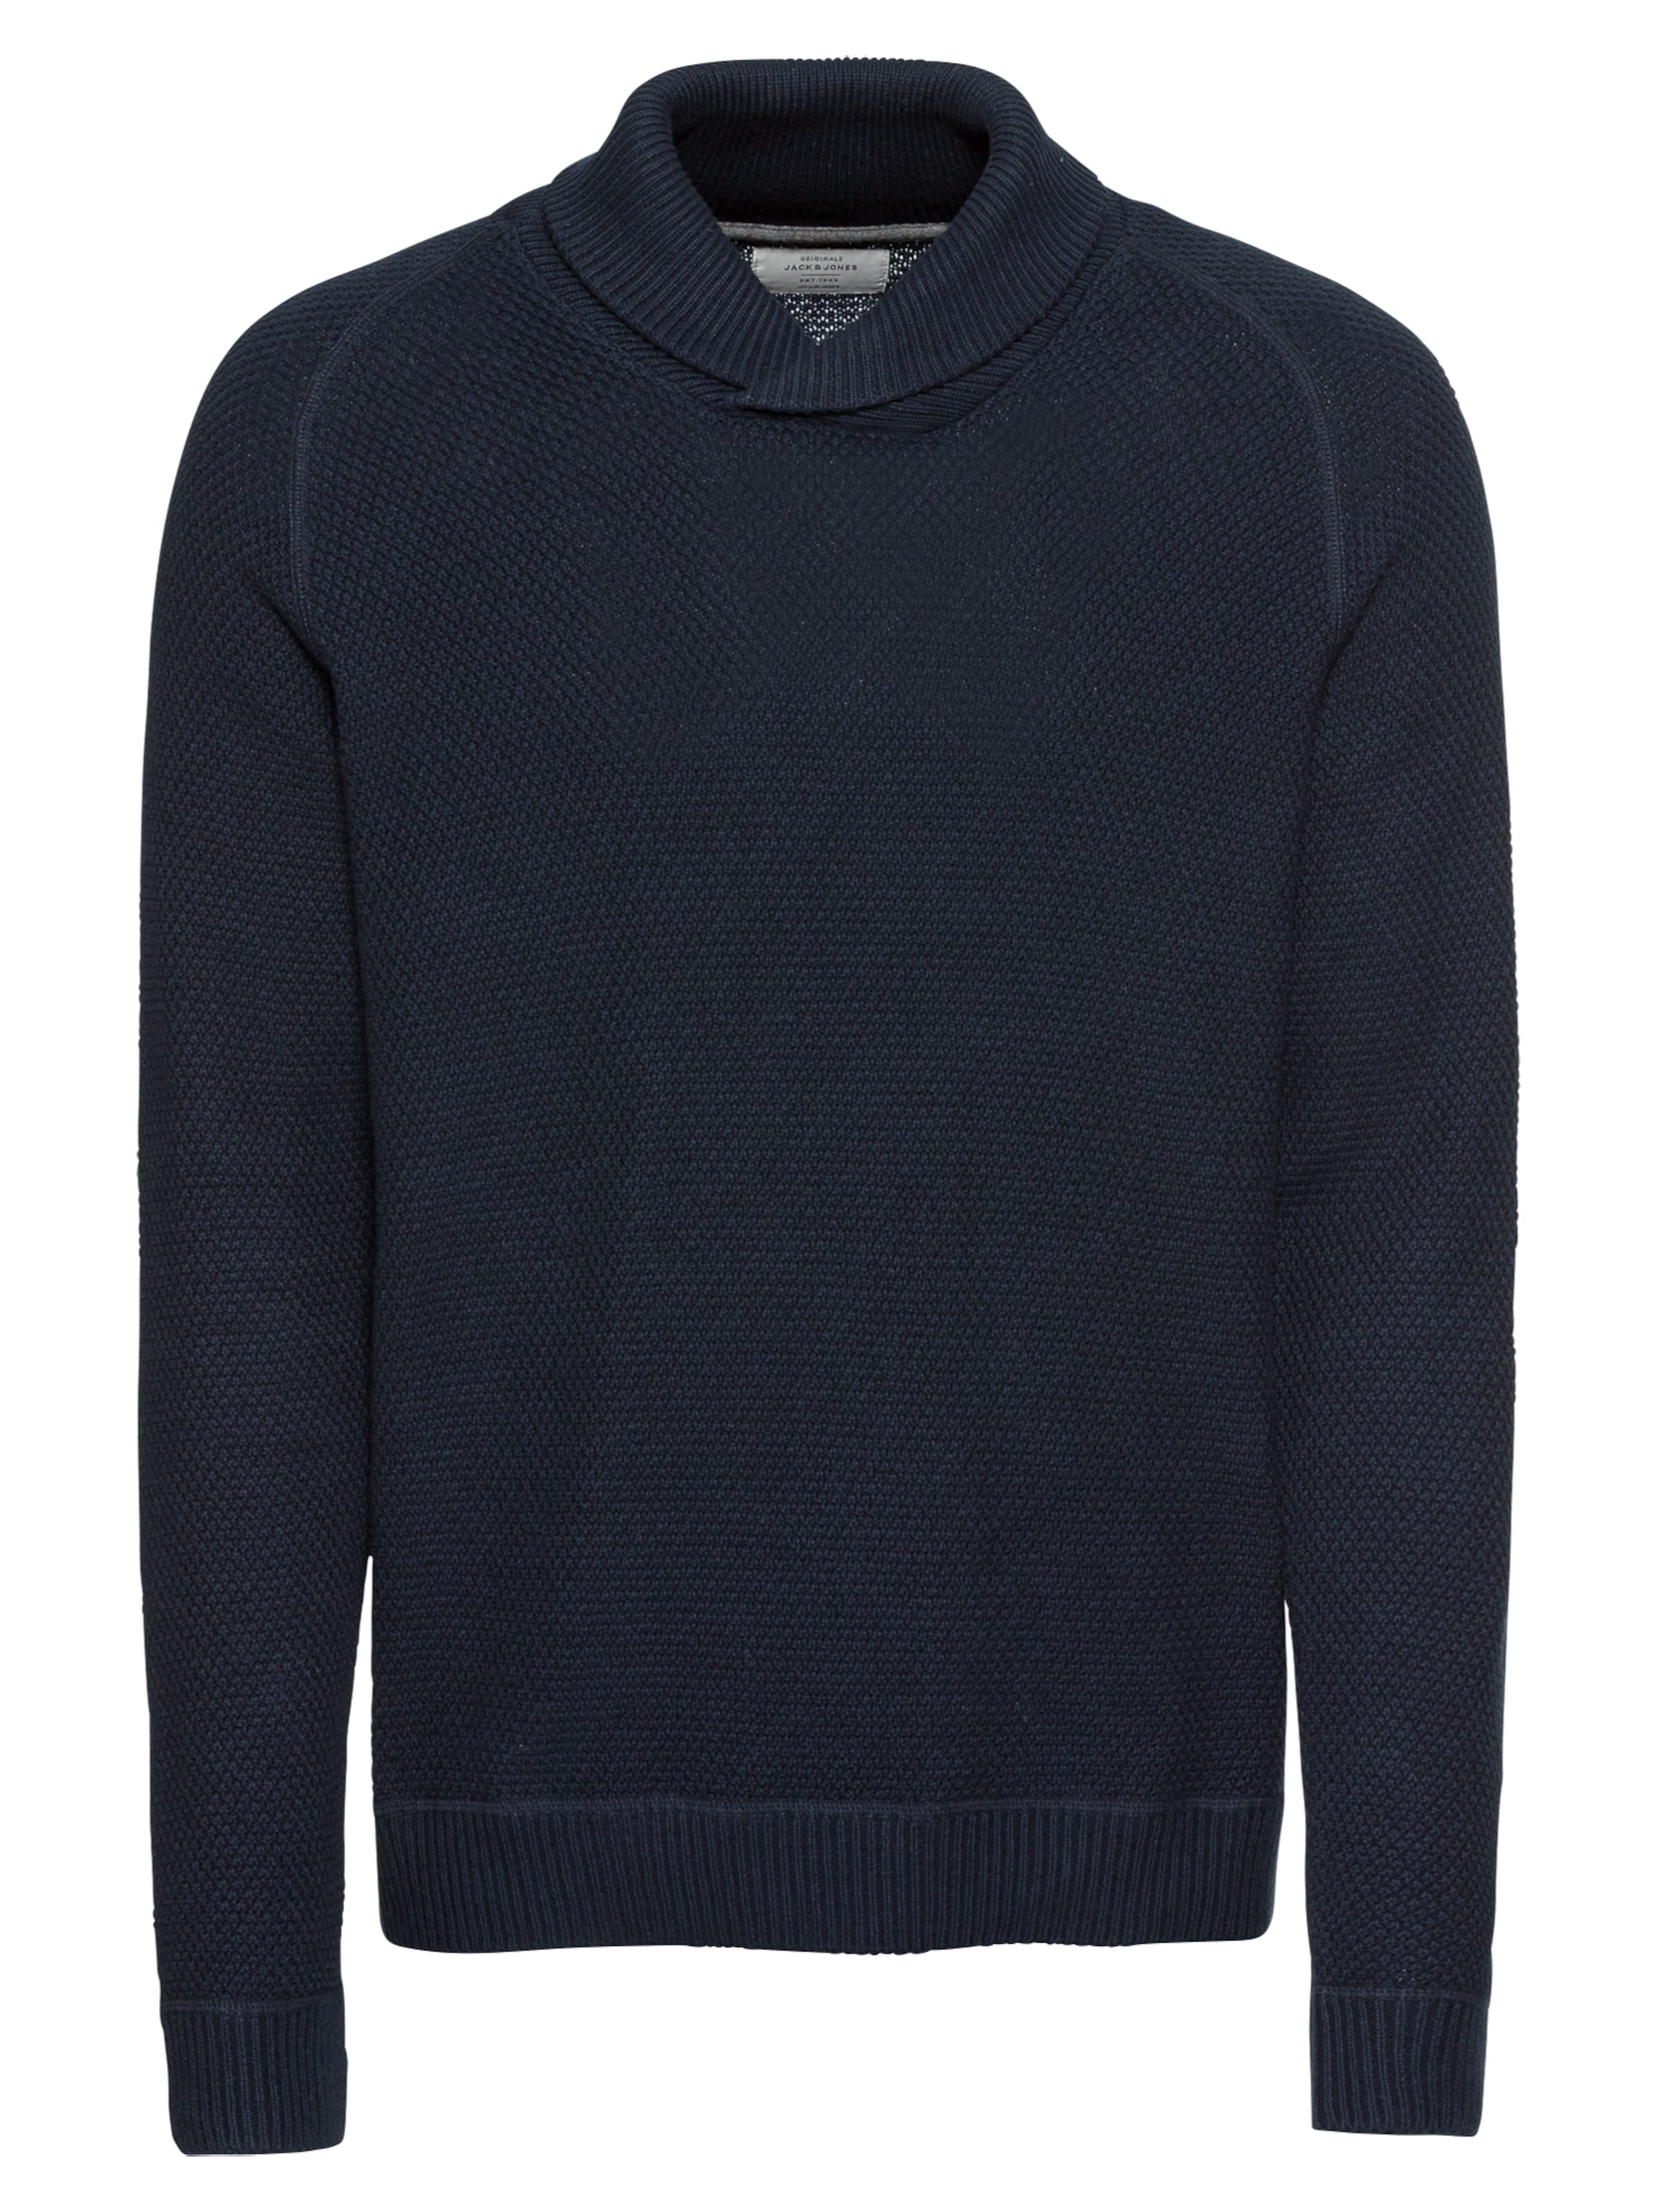 Dunkelblau In In Pullover Pullover Jones Jackamp; Dunkelblau Jackamp; Jones 8N0OmwyvnP